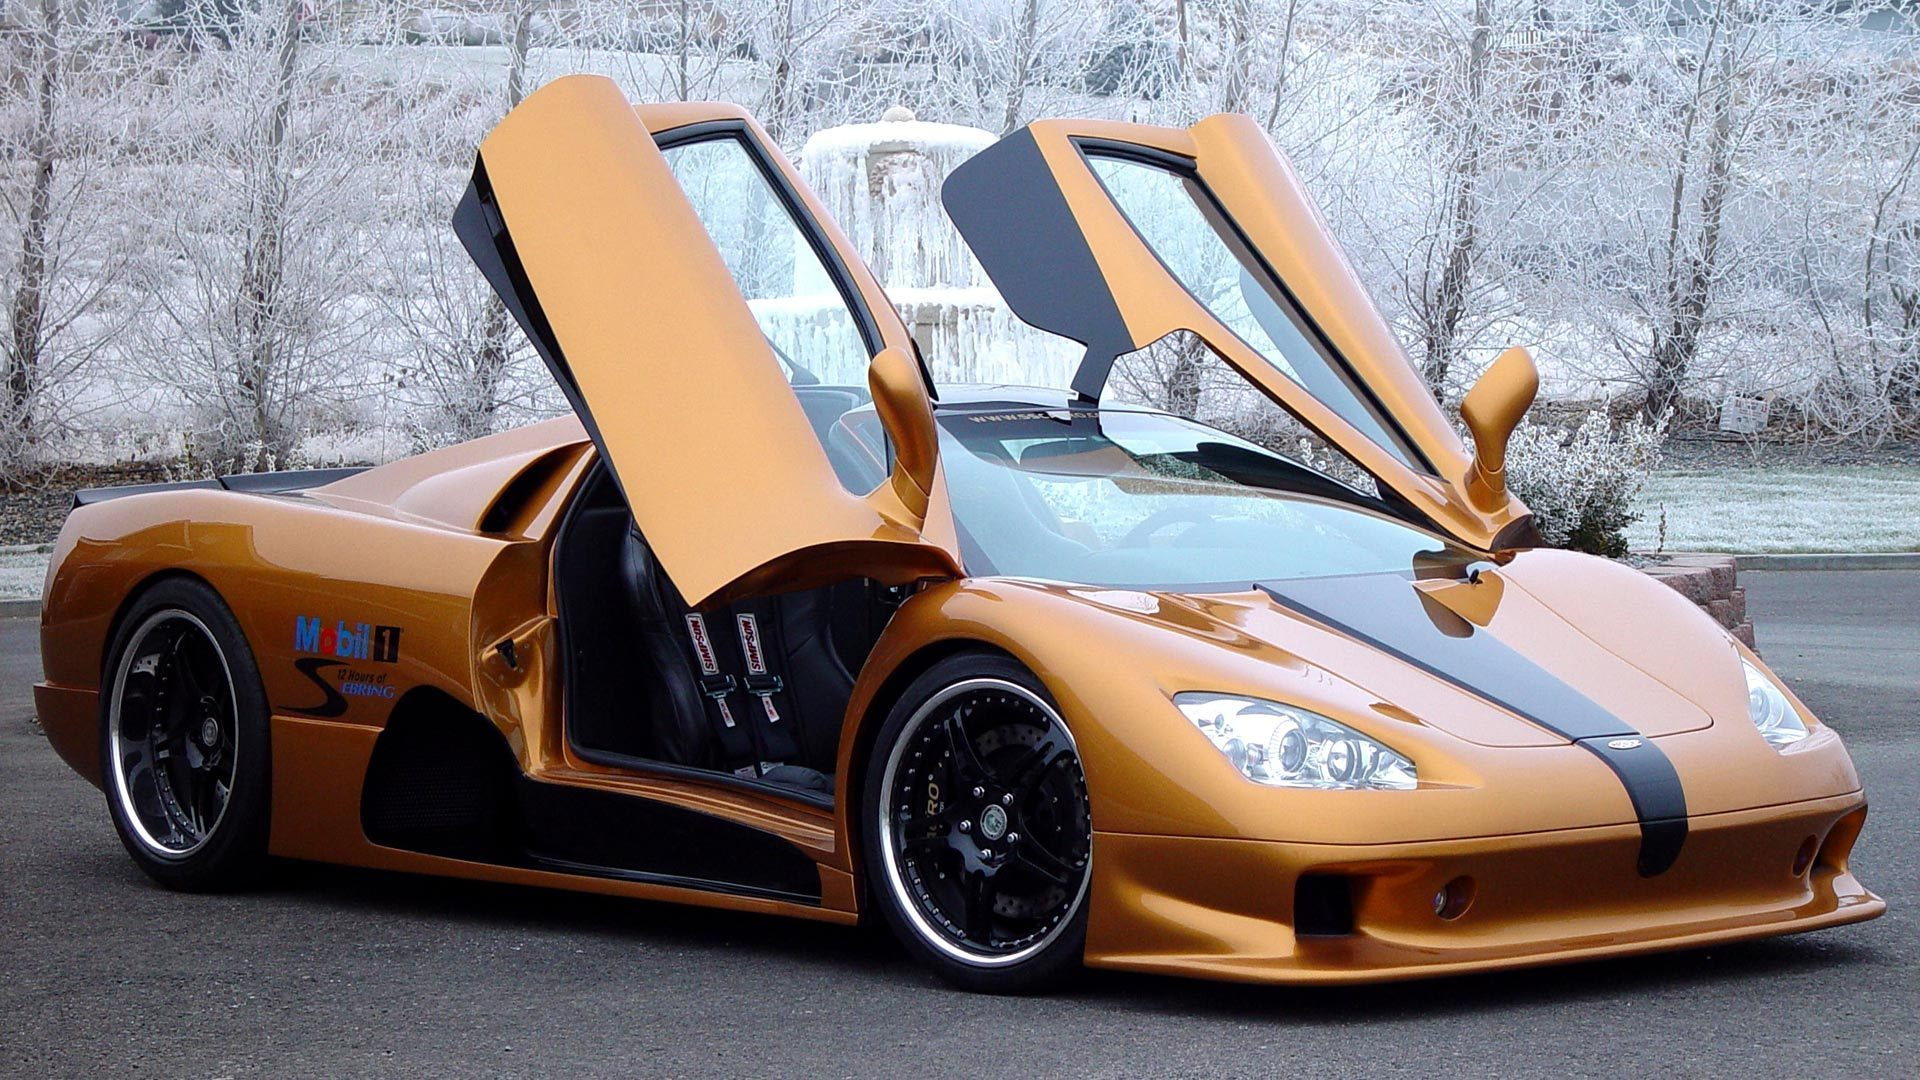 NO 3 FASTEST CARS IN THE WORLD